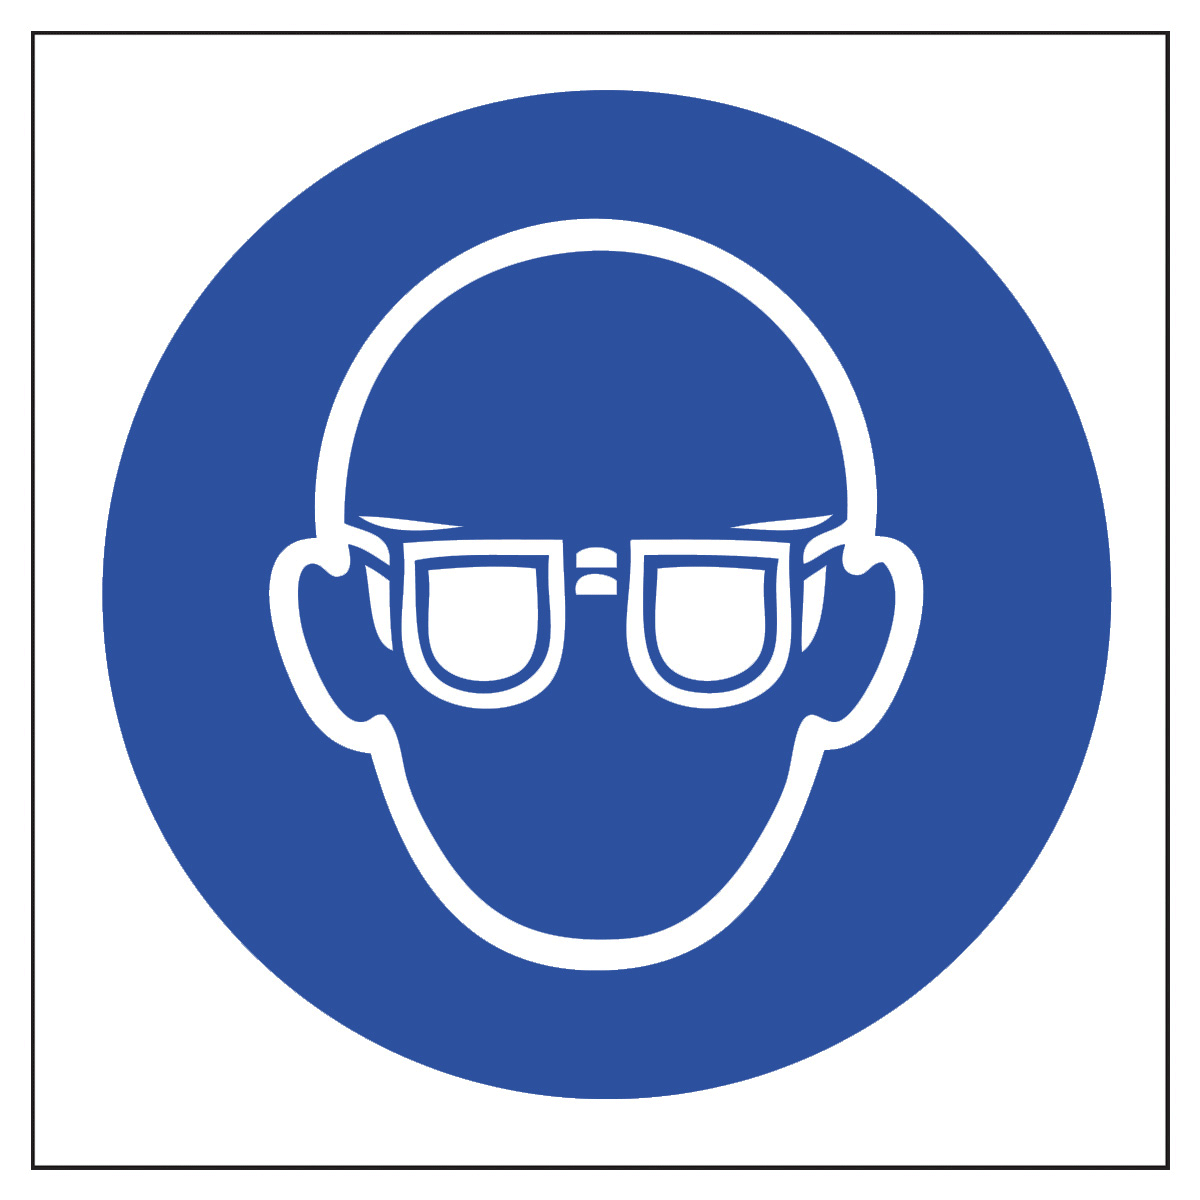 Safety goggles on eyes clipart.